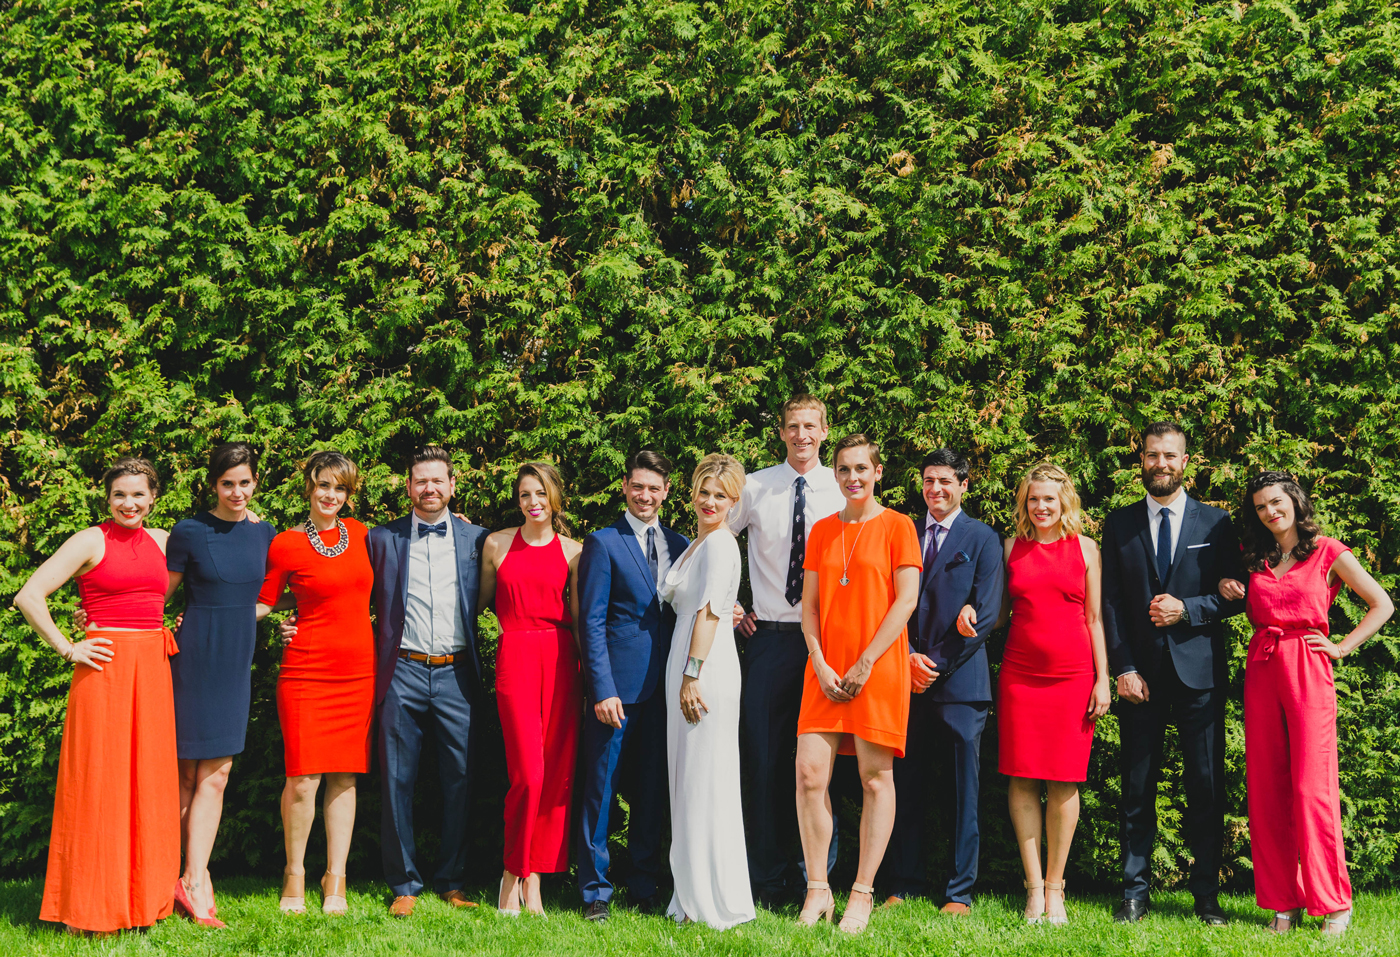 wedding party standing in front of hedges featuring women wearing mismatched bridesmaids jumpsuits